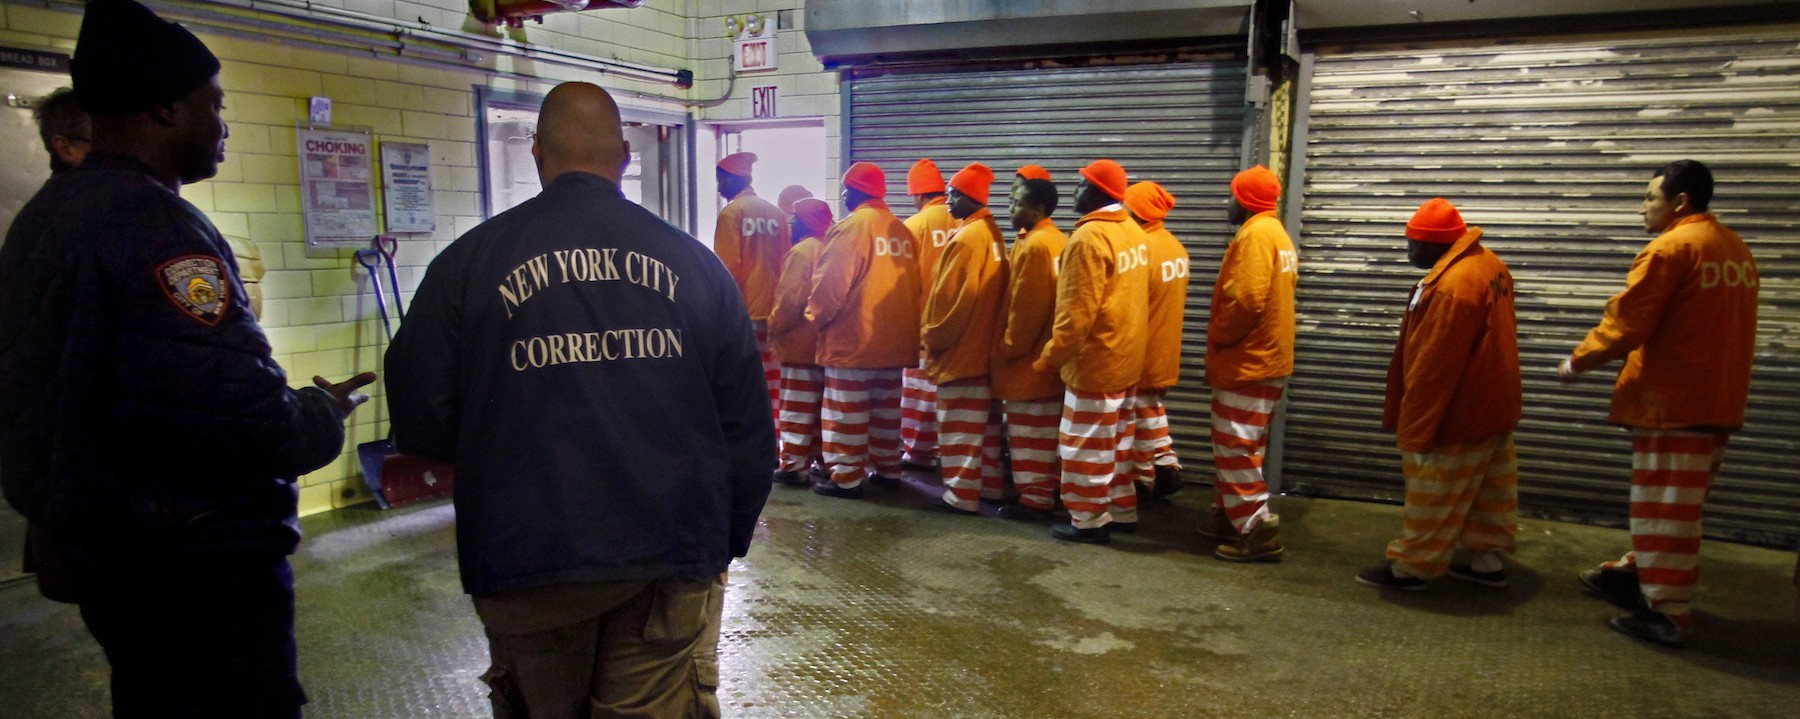 How New York City May Revamp Its Criminal Justice System